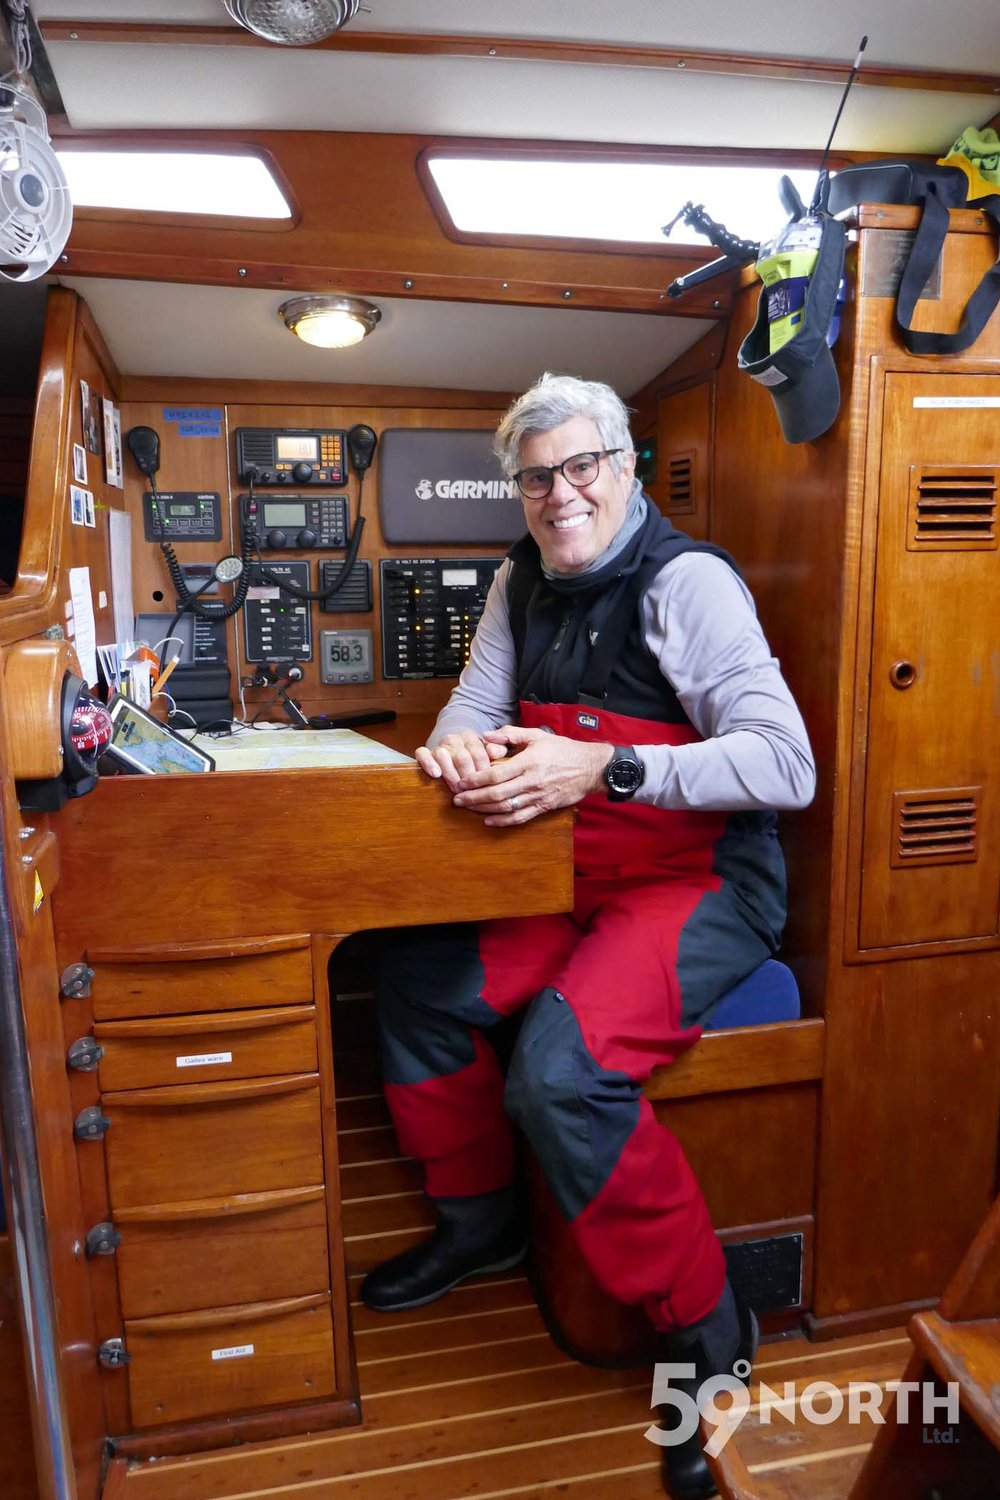 Karl at the nav station! Leg 8, 2017: Sweden to Scotland 59-north.com